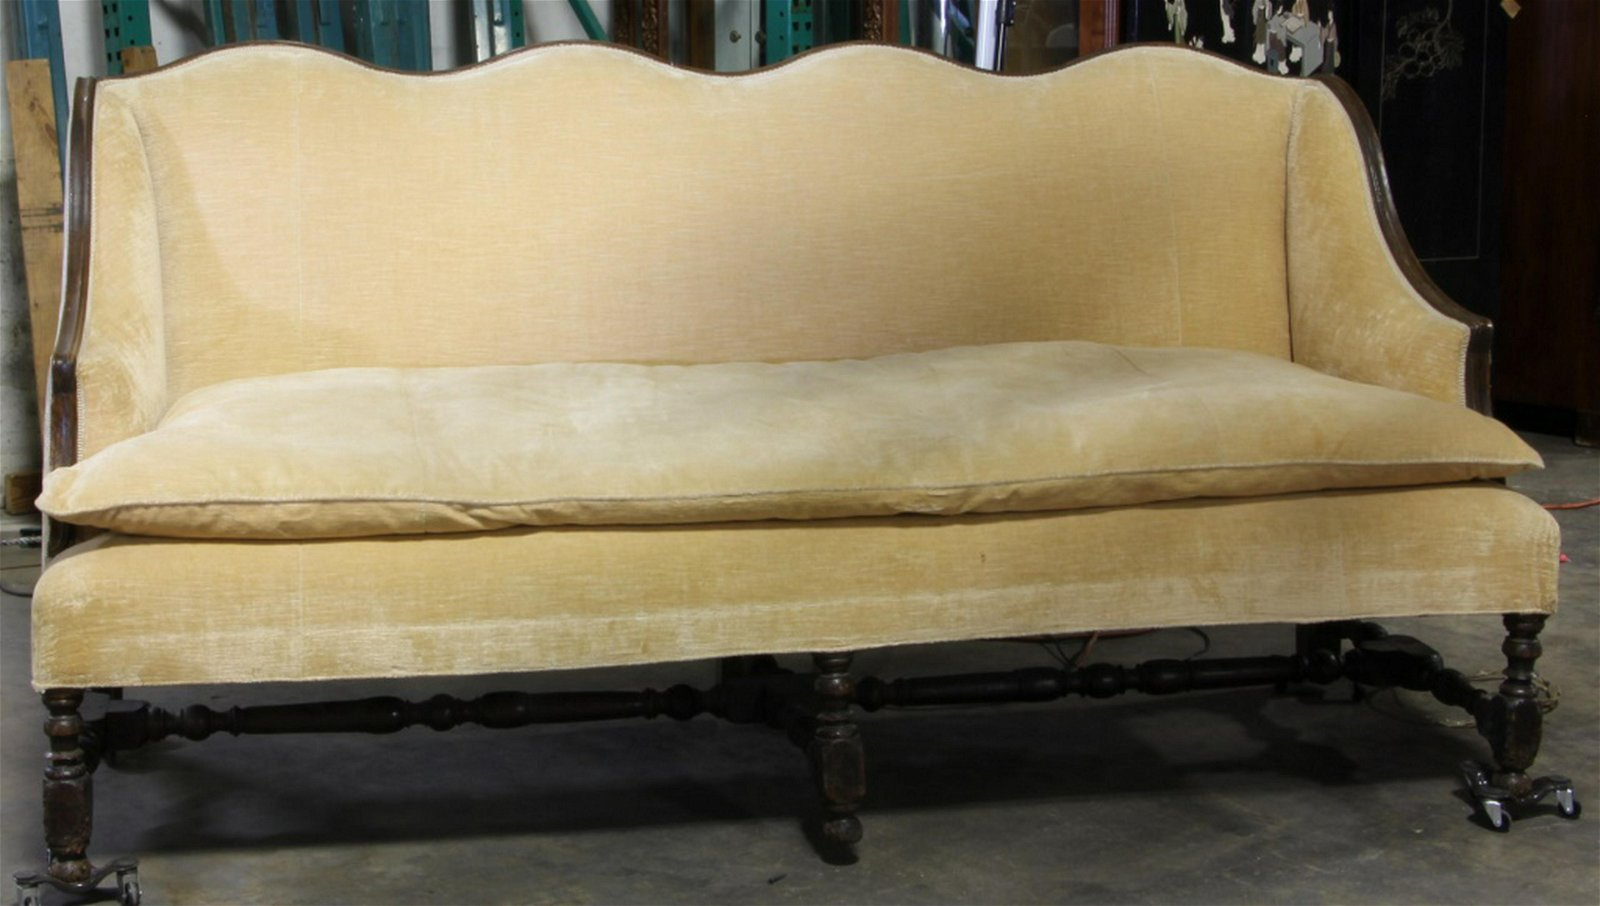 18th/19th CENTURY COUNTRY FRENCH FOUR CHAIR SOFA